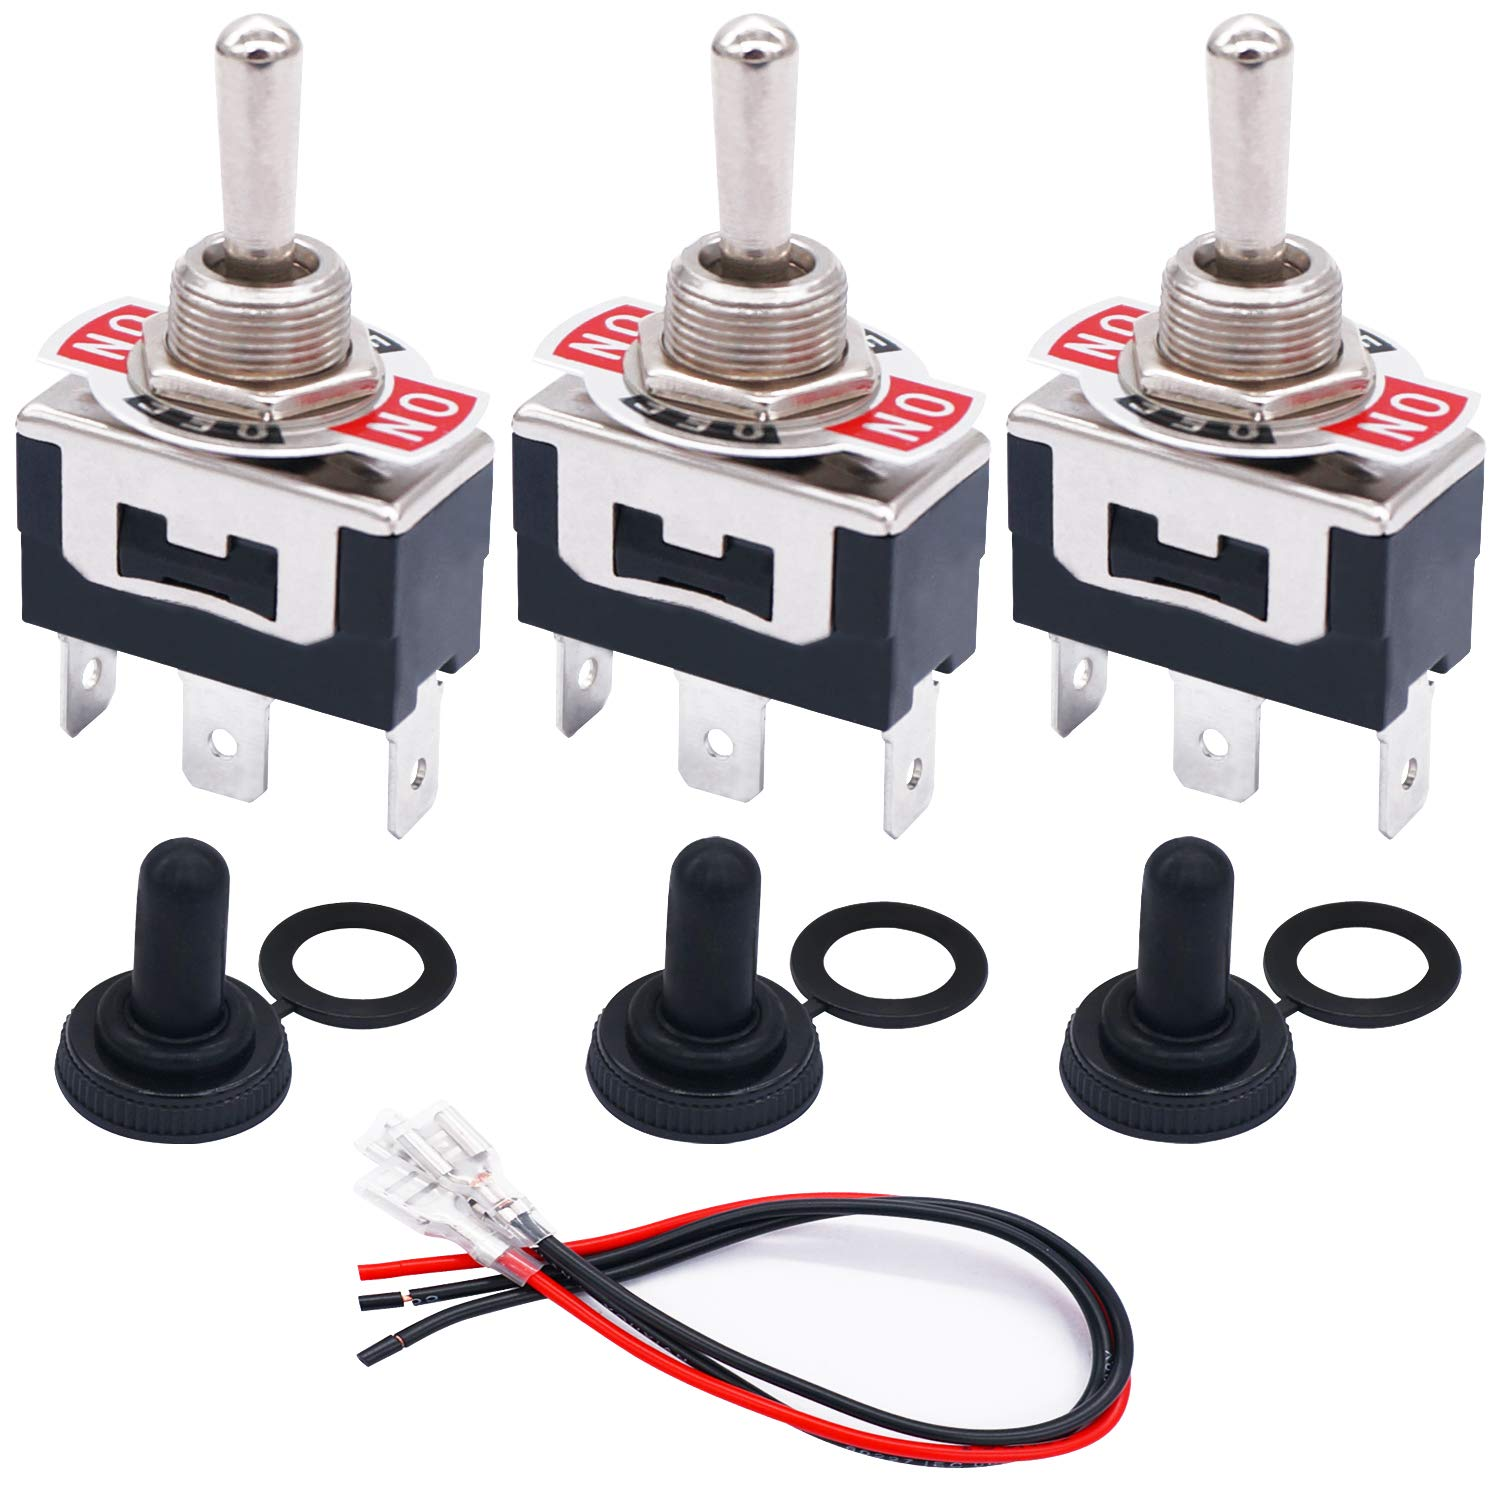 ON //OFF// ON TWTADE 3Pcs Momentary Toggle Switch 3 Pins 3 Position SPDT Heavy Duty Rocker Toggle Switch 16A 250VAC Spade Terminal Metal Bat Switch With Waterproof Boot Cap And 6.4mm Wires TEN-123MZX